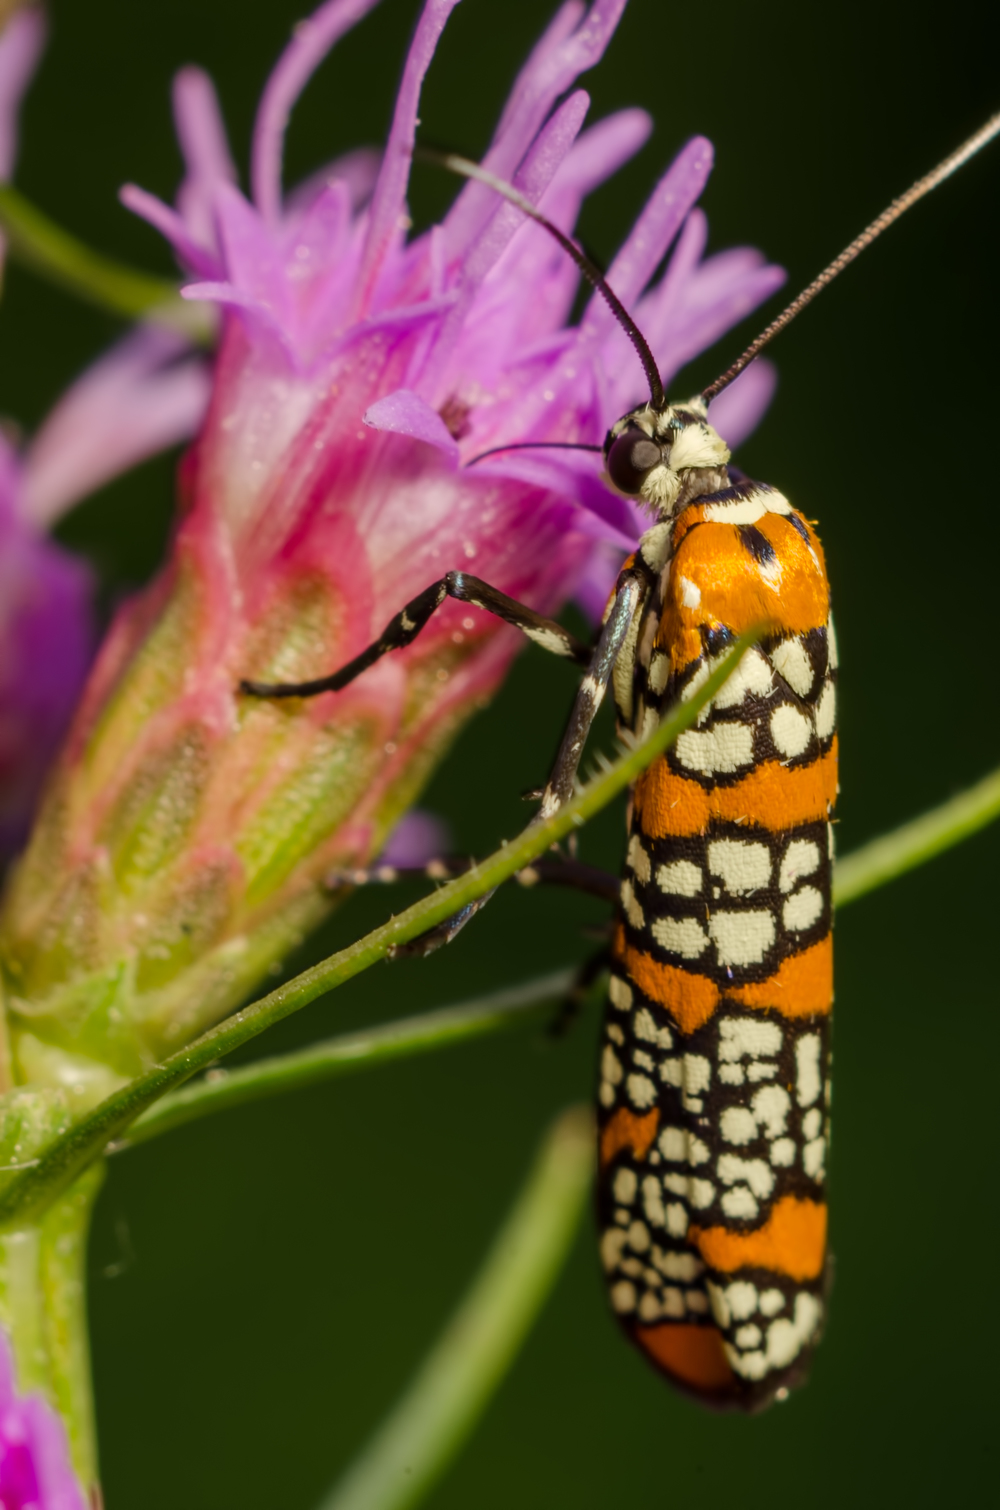 Ailanthus Webworm Moth  Nikon D7000 ISO 200  f/11 1/100 sec. Nikkor 105mm f/4 Micro AI manual focus lens + 27mm + 20mm + 14mm + 12mm extension tubes, off-body flash with modified soft box